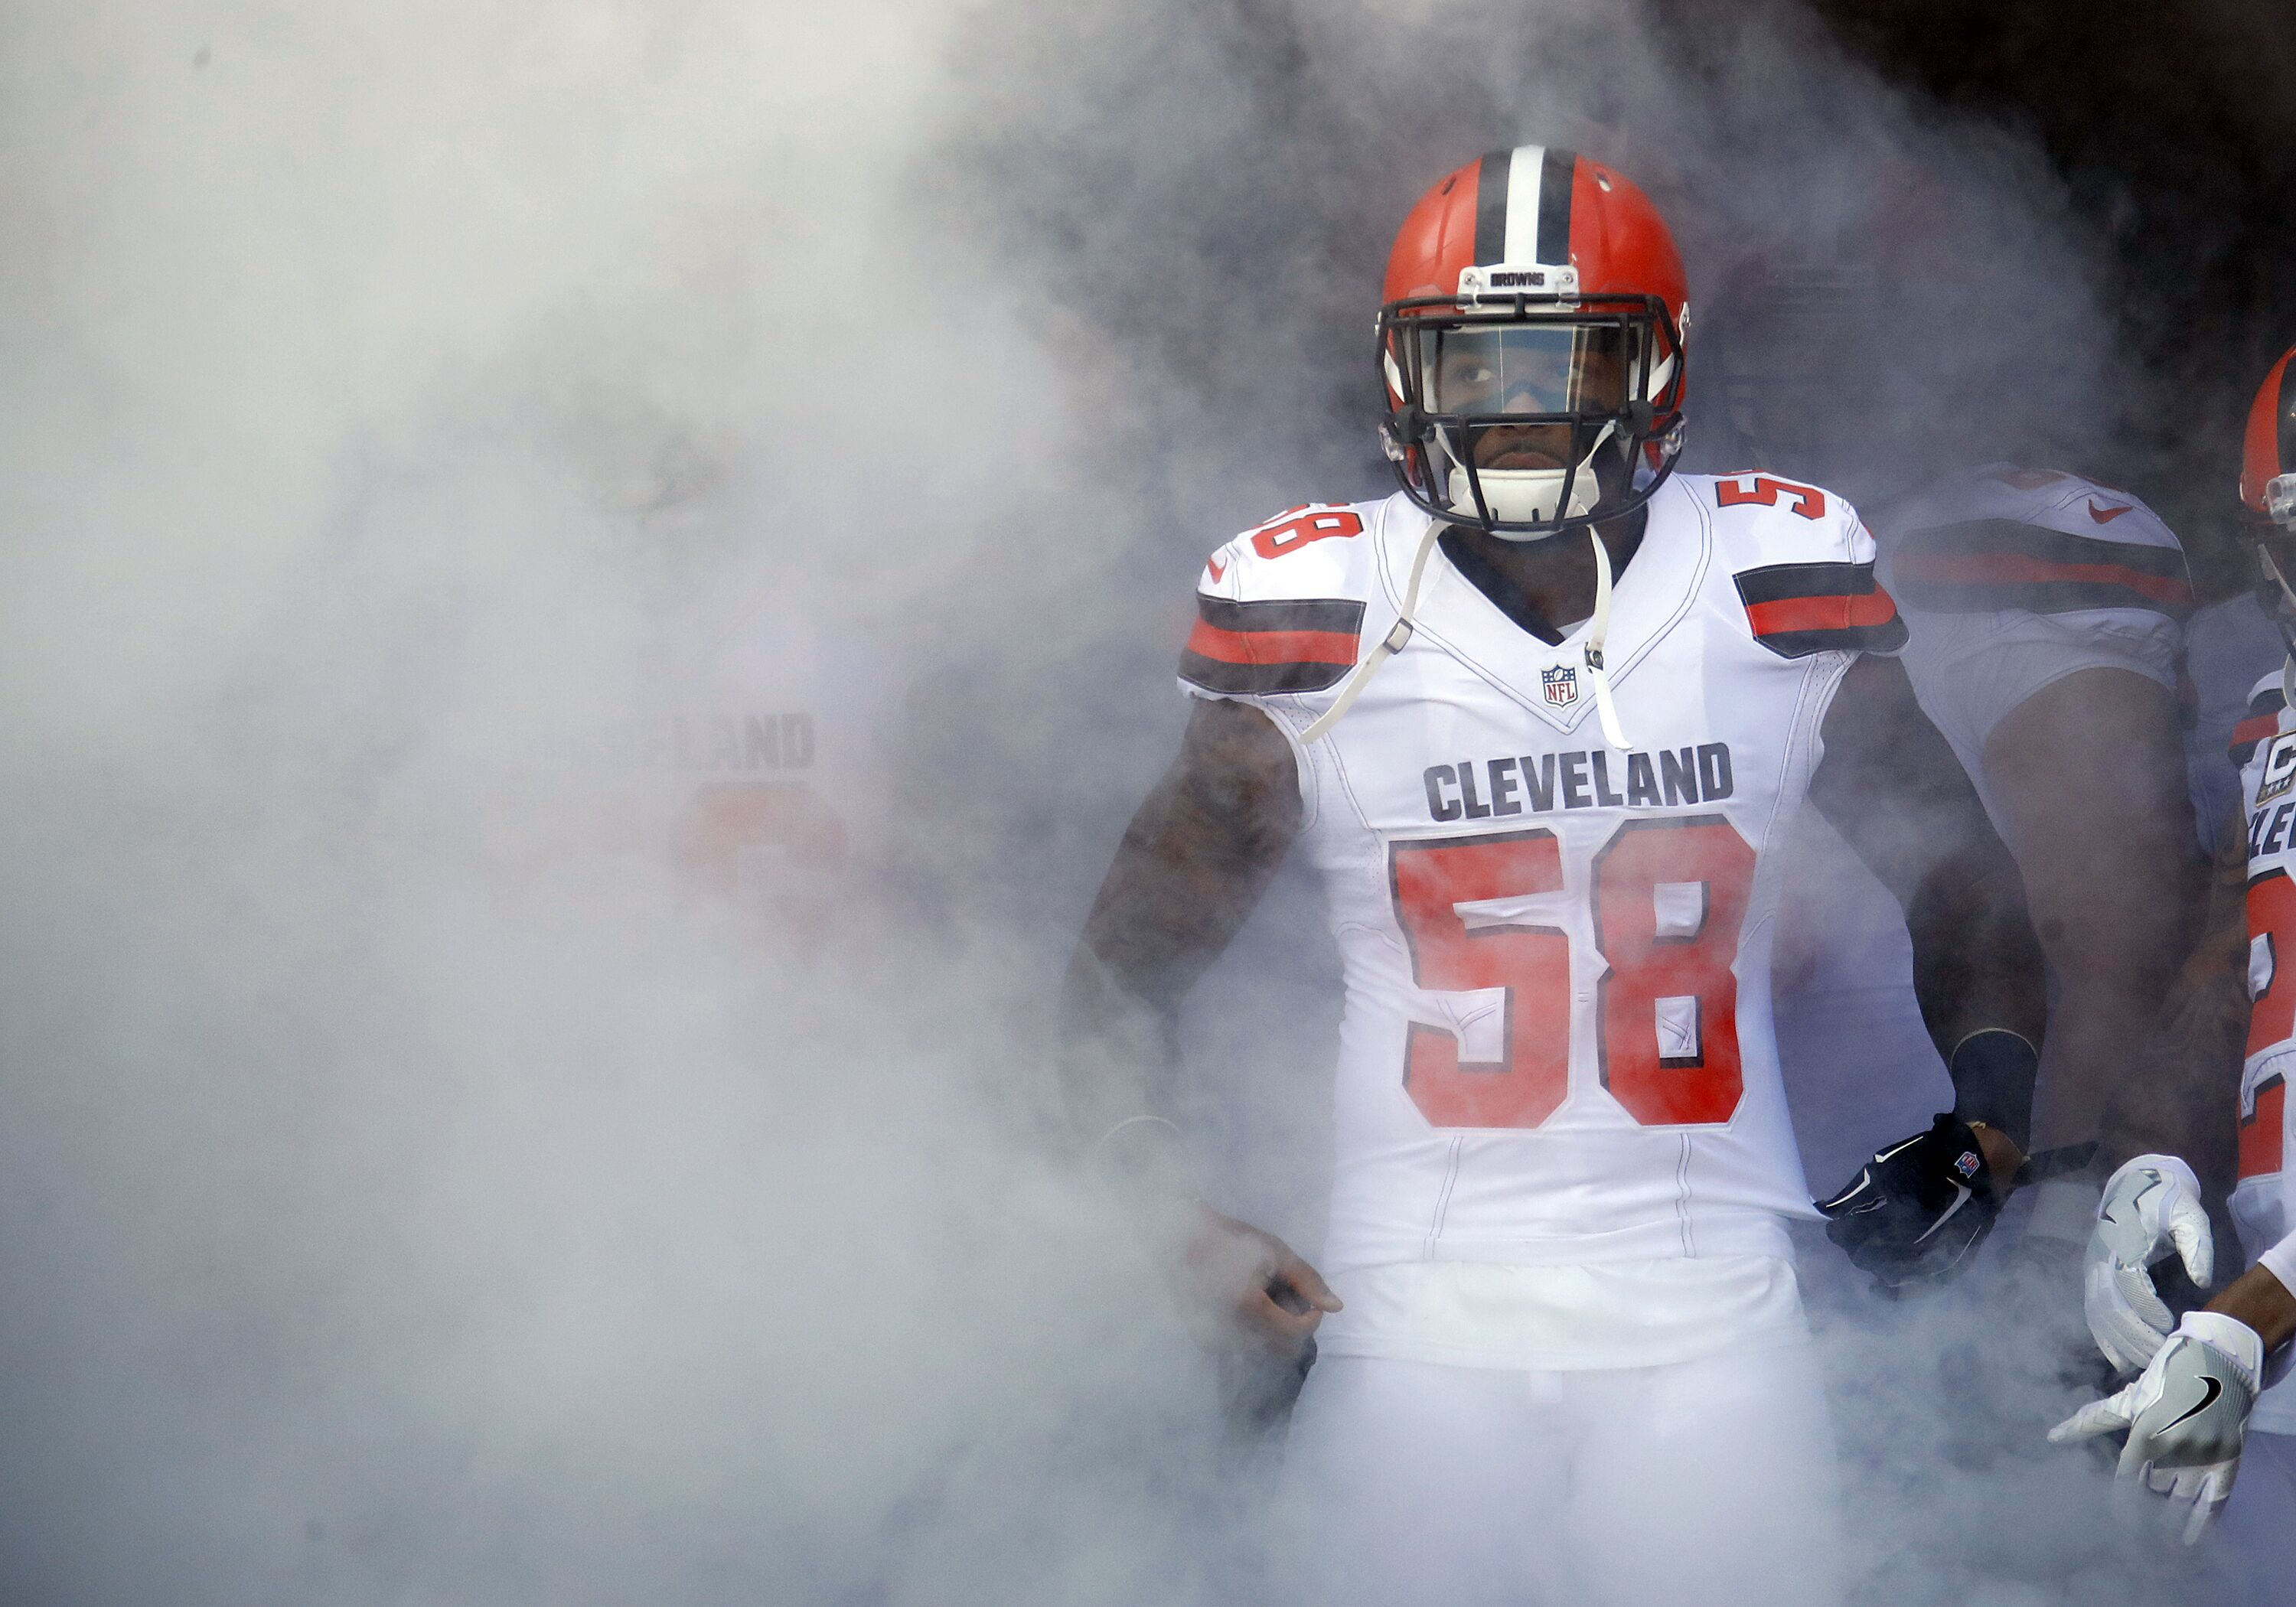 half off a5bc3 cadab Cleveland Browns: Linebacker preview, projection - Page 4